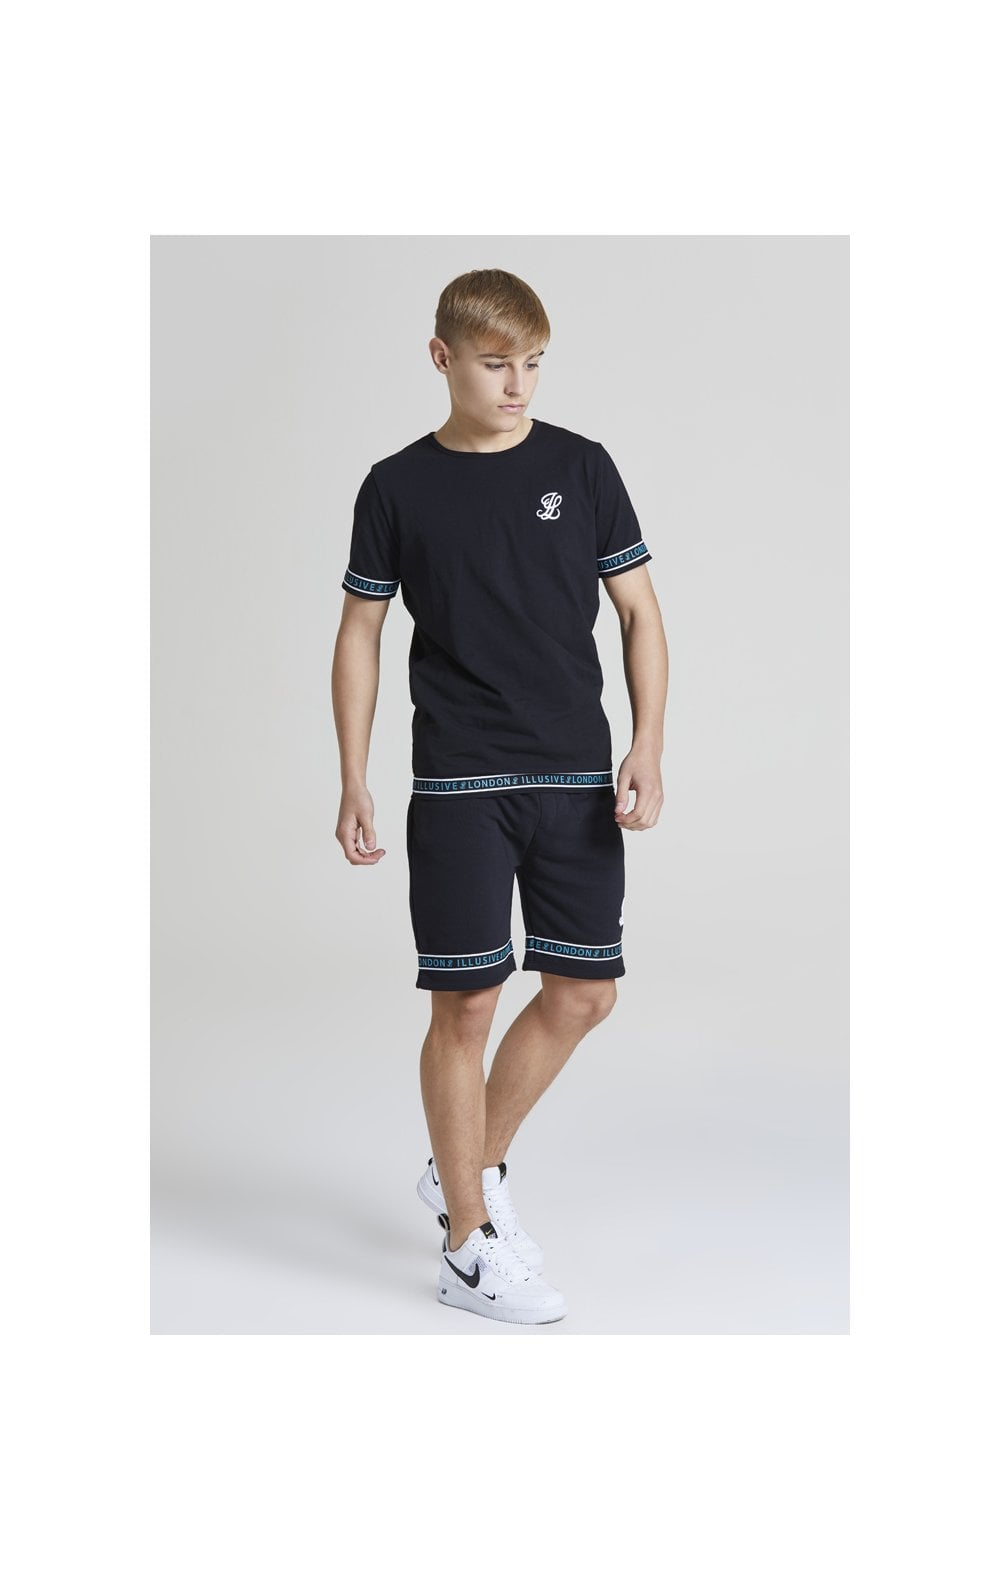 Illusive London Branded Jersey Shorts - Black & Teal Green (3)